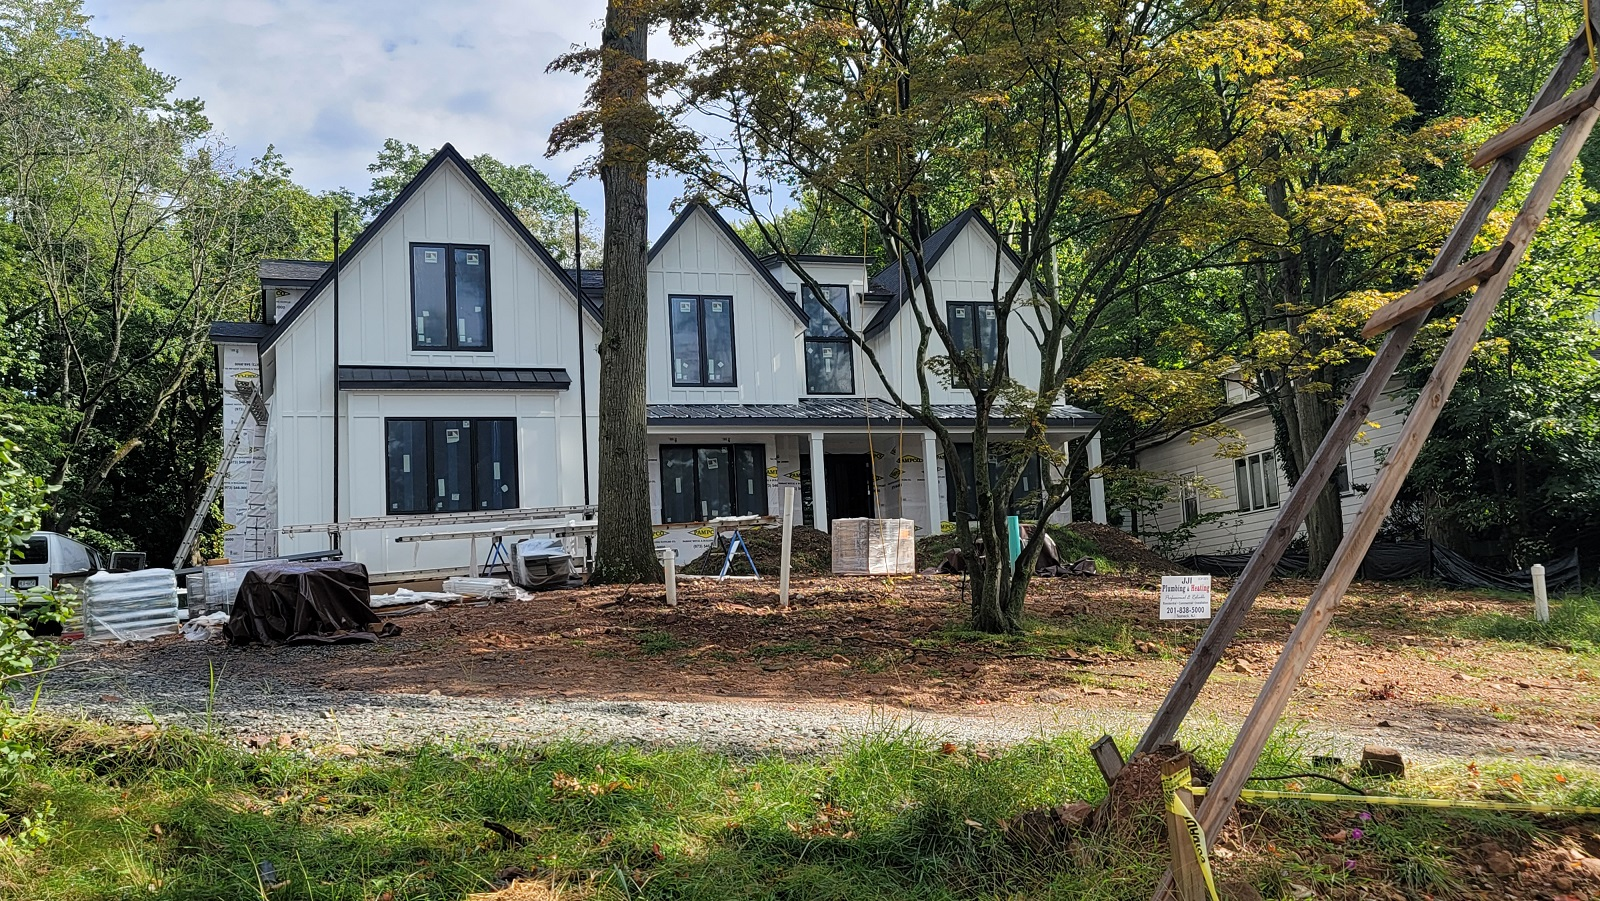 NEW CONSTRUCTION, ON A PRIVATE ONE ACRE, ON TENAFLY'S EAST HILL FOR UNDER $3 MILLION? YES, THIS IS NOT A MISTAKE!   Picture yourself in this luxurious home with the best of indoor/outdoor amenities. Completion Q1 2022  Featuring approx. 7300 sf living, 6 bedrooms, 6.5 bathrooms, 3-car heated garage, outdoor living that includes a pool with a spa, Outdoor cooking space with grill, stovetop, and refrigerator.  Style and flair are evident all around this home with its MADE IN ITALY kitchen, black framed windows, 6' wide Pocelanosa engineered floors, high ceilings and radiant heated bathroom floors.  Additional features include a home theater, gym, fireplaces in the great room and in the master bedroom, a full house generator and SMART-HOME WI-FI compatible door-bell, front door lock and thermostats, black top driveway with Belgian block apron.